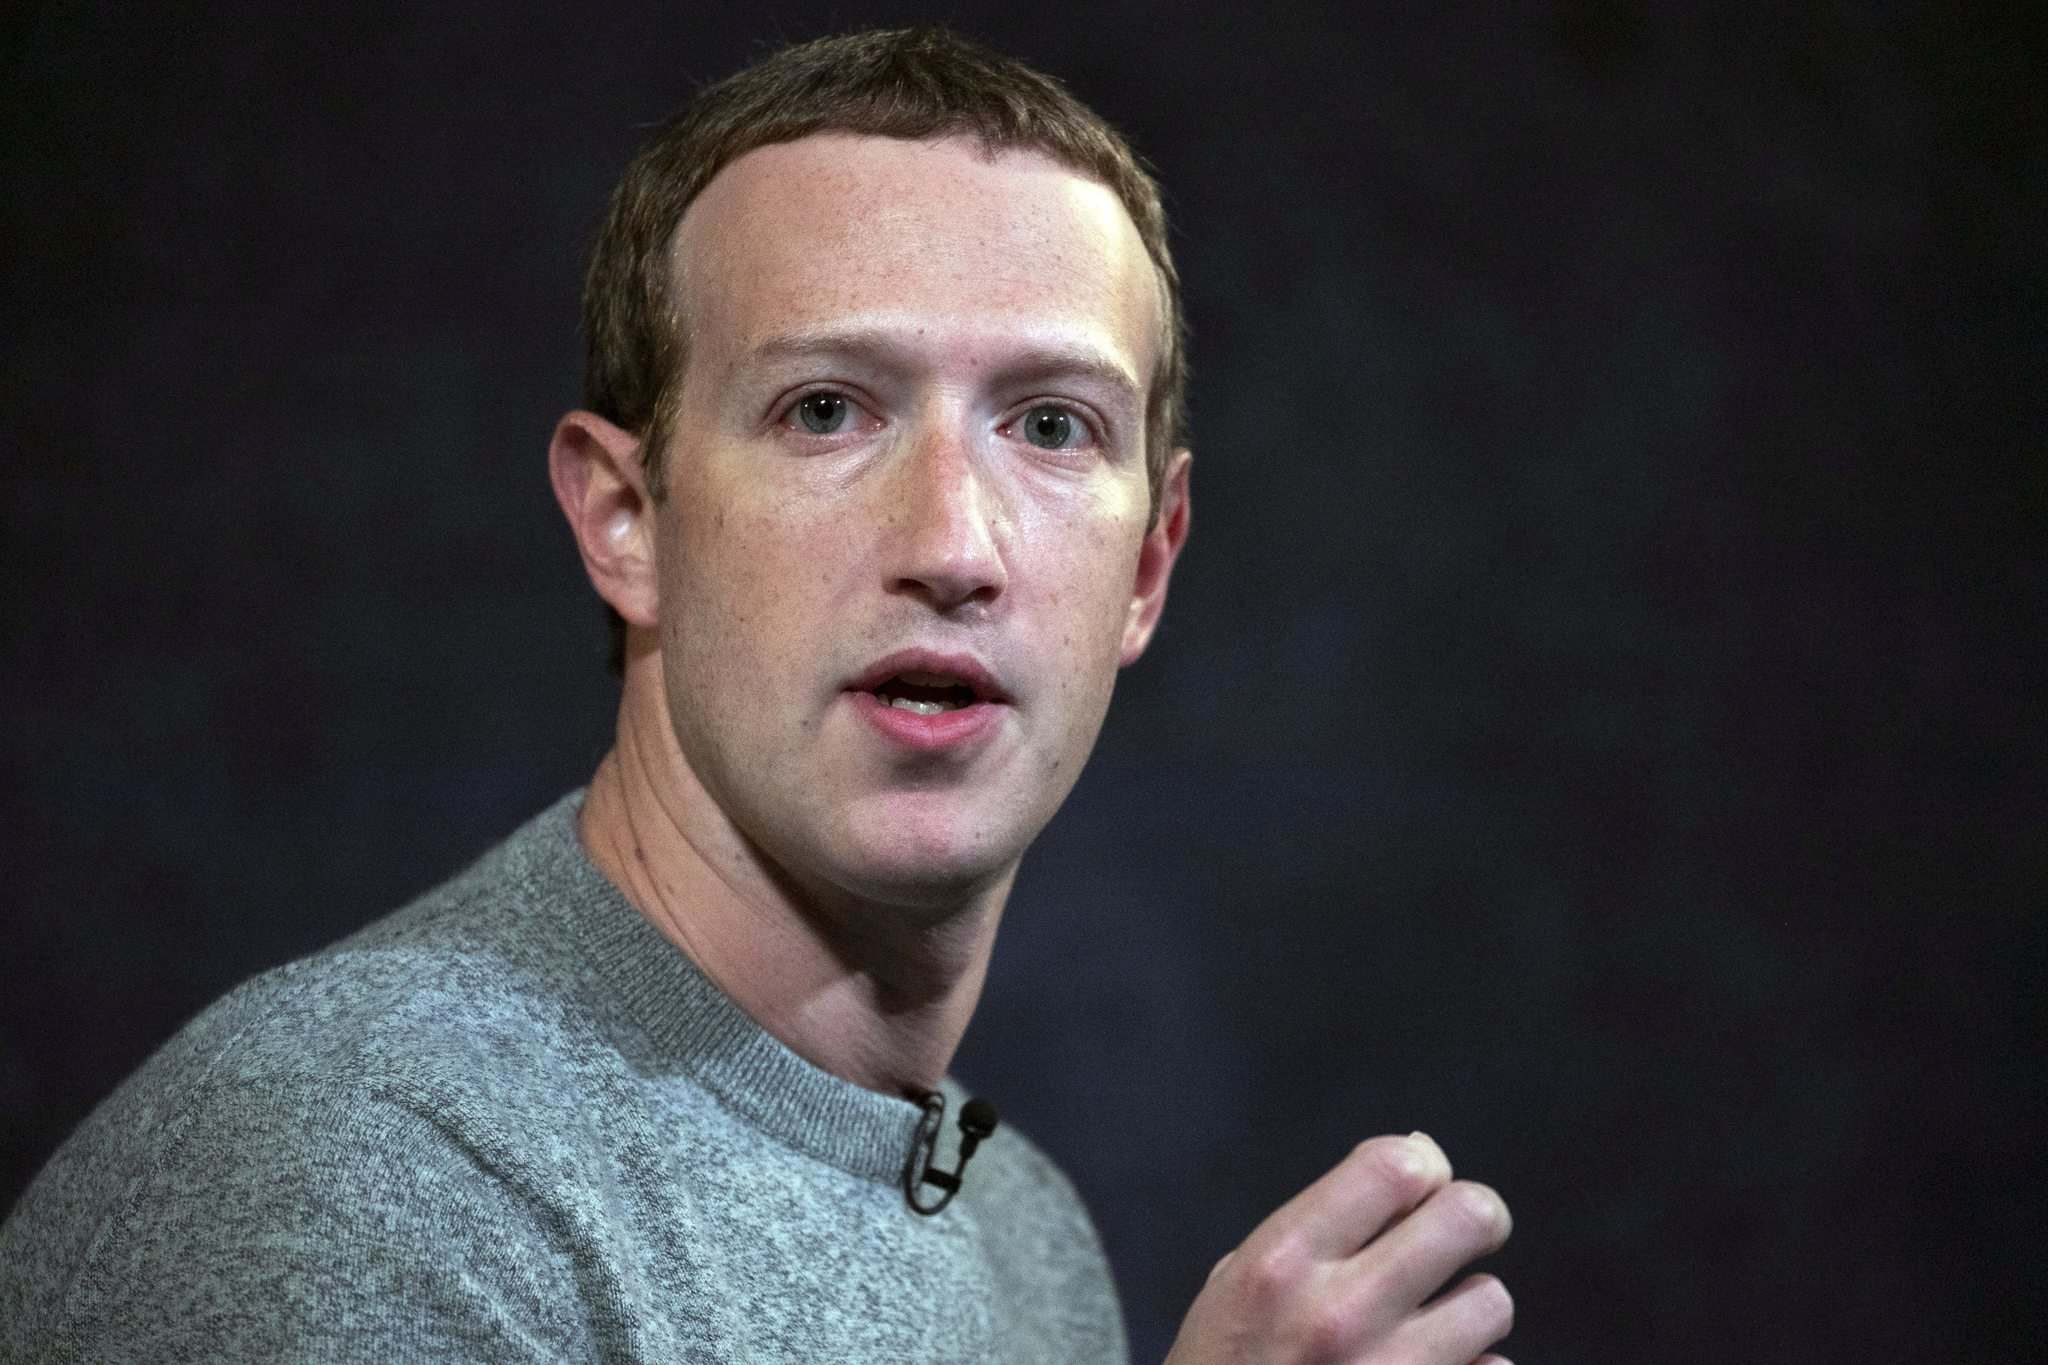 Facebook CEO Mark Zuckerberg reversed his stance on defending Holocaust deniers' rights to post their opinions on the platform.